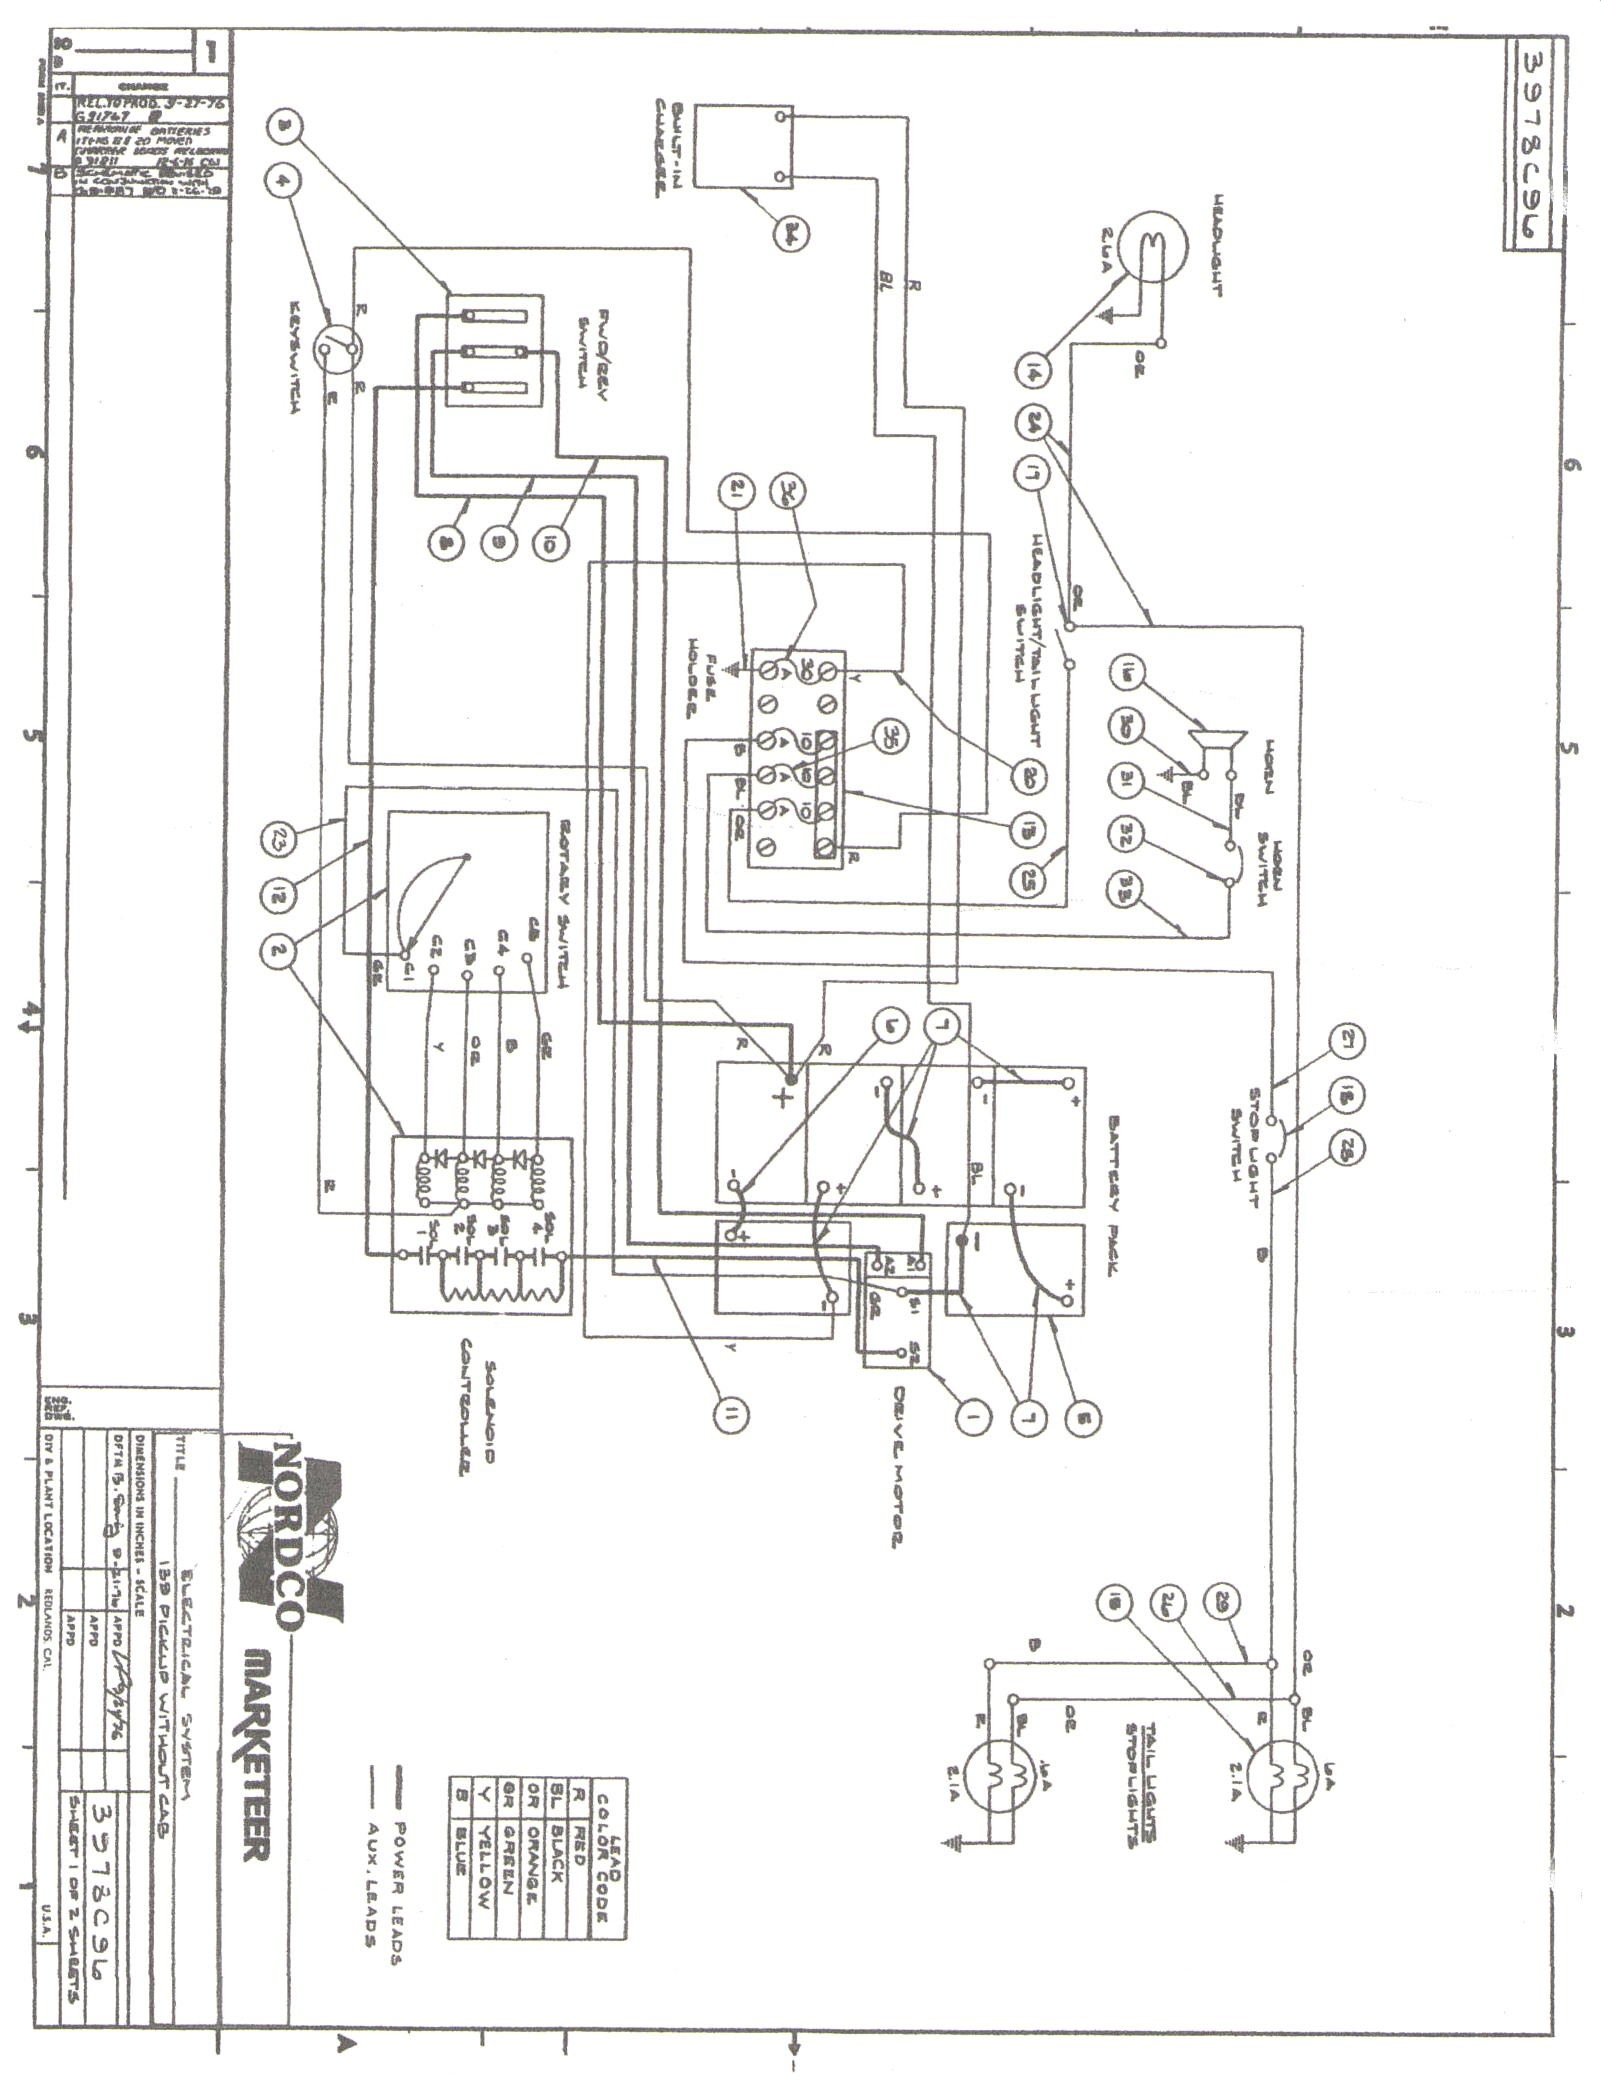 Yamaha Fz6 Wiring Diagram Free Download Schematic